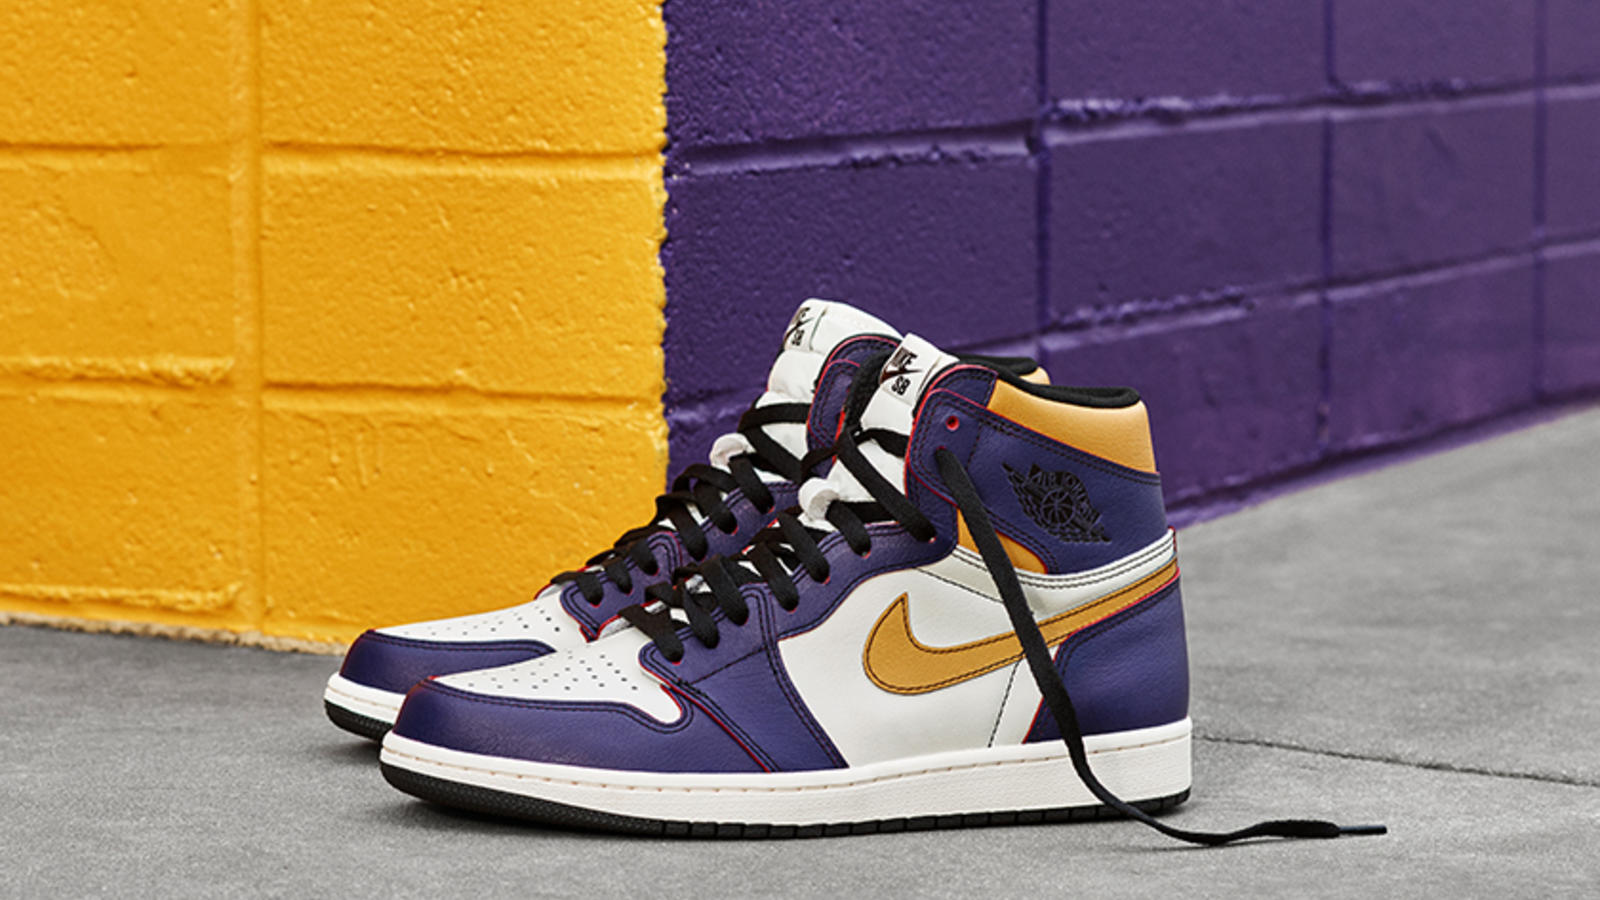 426c0fc7924d Initially adapted as a skateboarding shoe due to its high collar and Air  cushioning, the Air Jordan 1 silhouette took the SB circuit by storm soon  after its ...